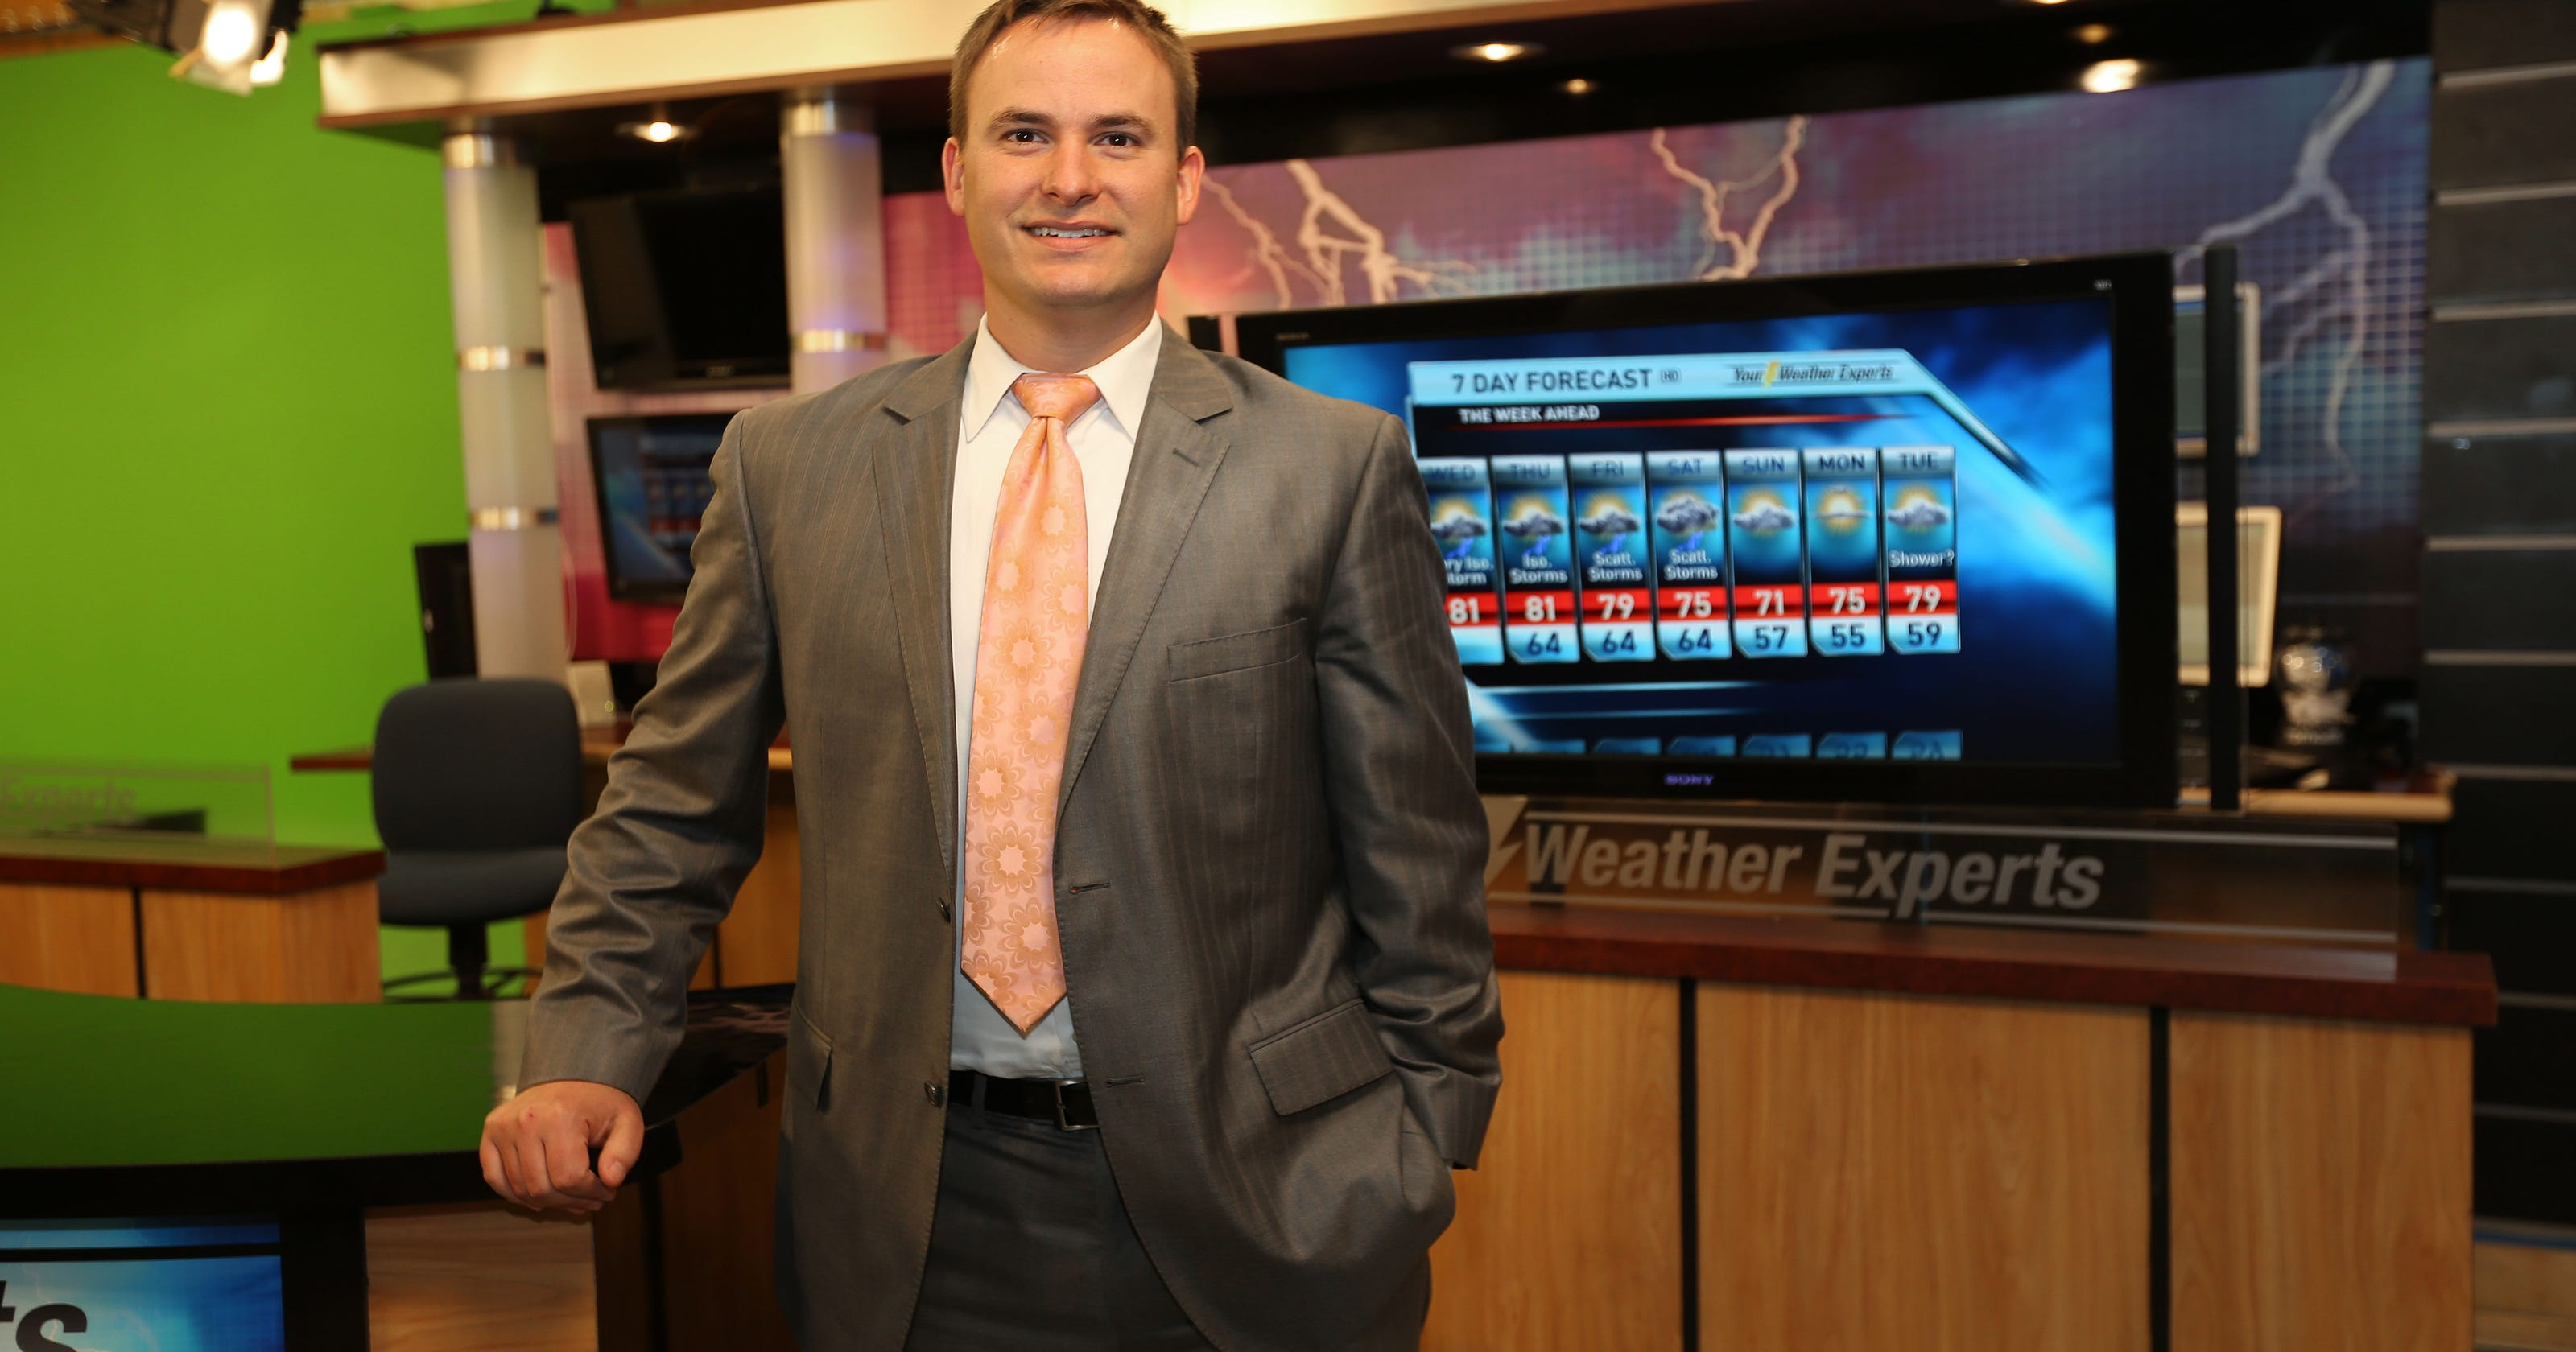 Pokin Around: Who's the most accurate weather forecaster?